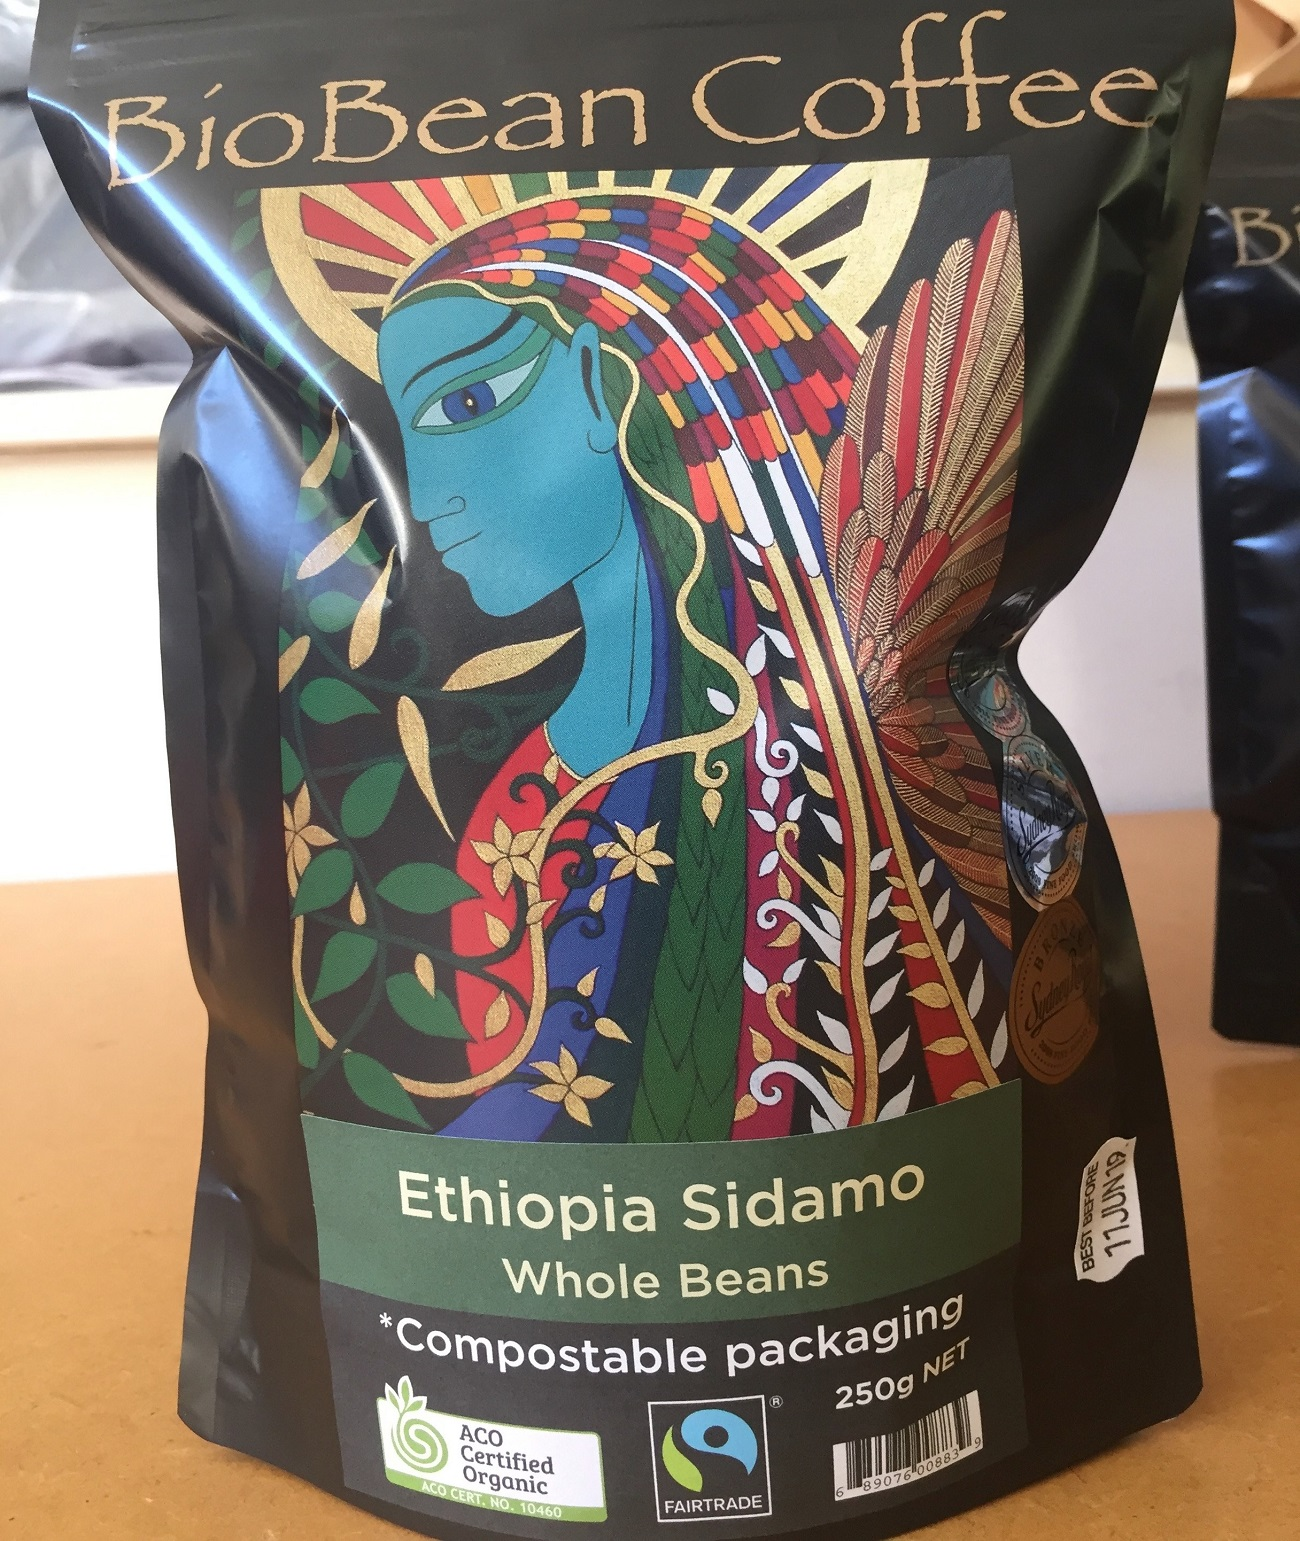 BioBean Coffee releases new range of home compostable packaging